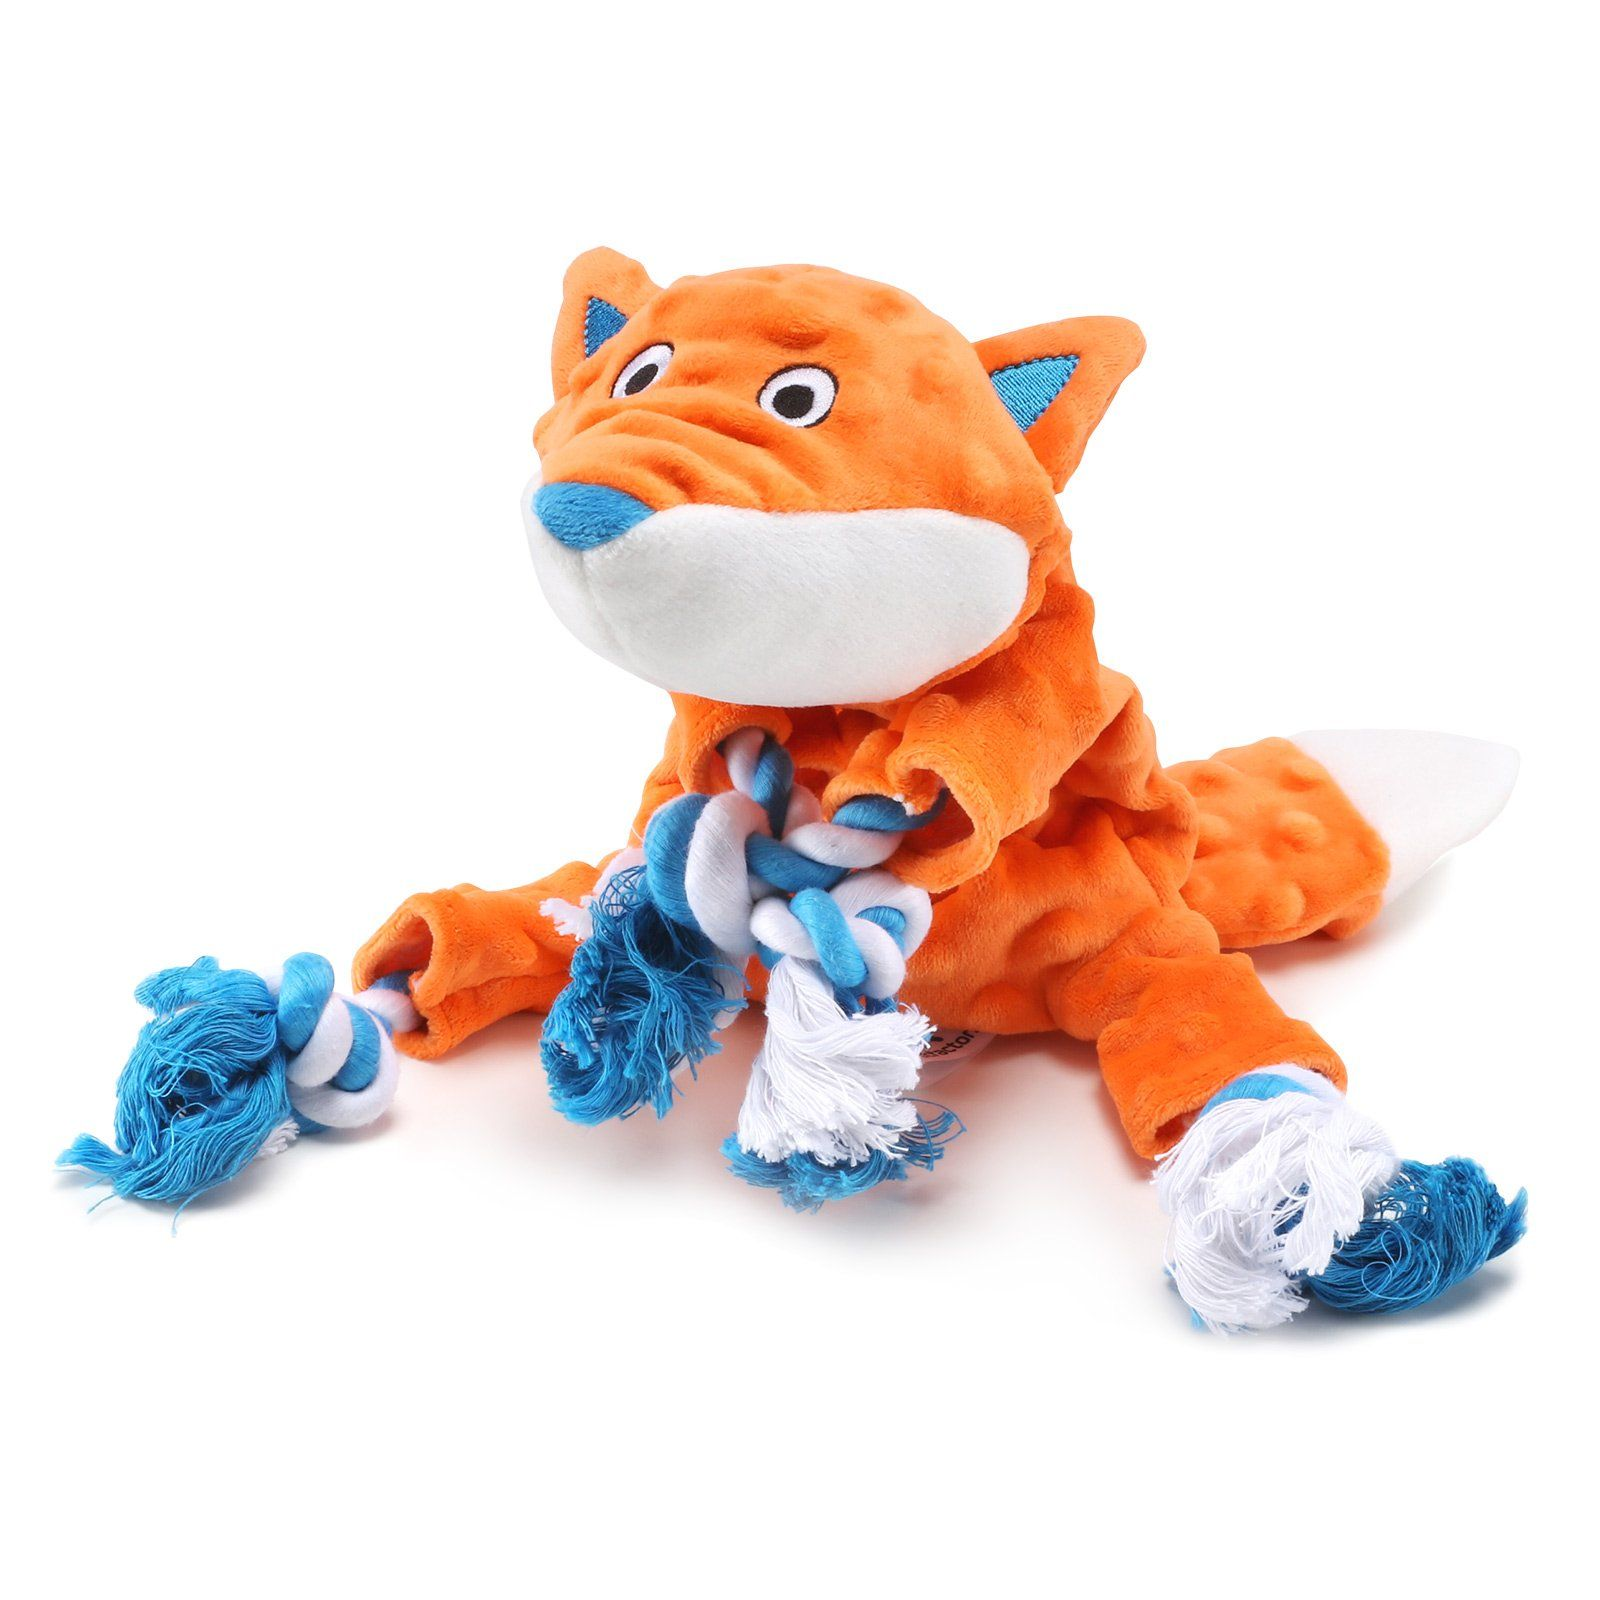 Petfactors Plush Dog Toy Fox Pattern Stuffingless Durable Tough